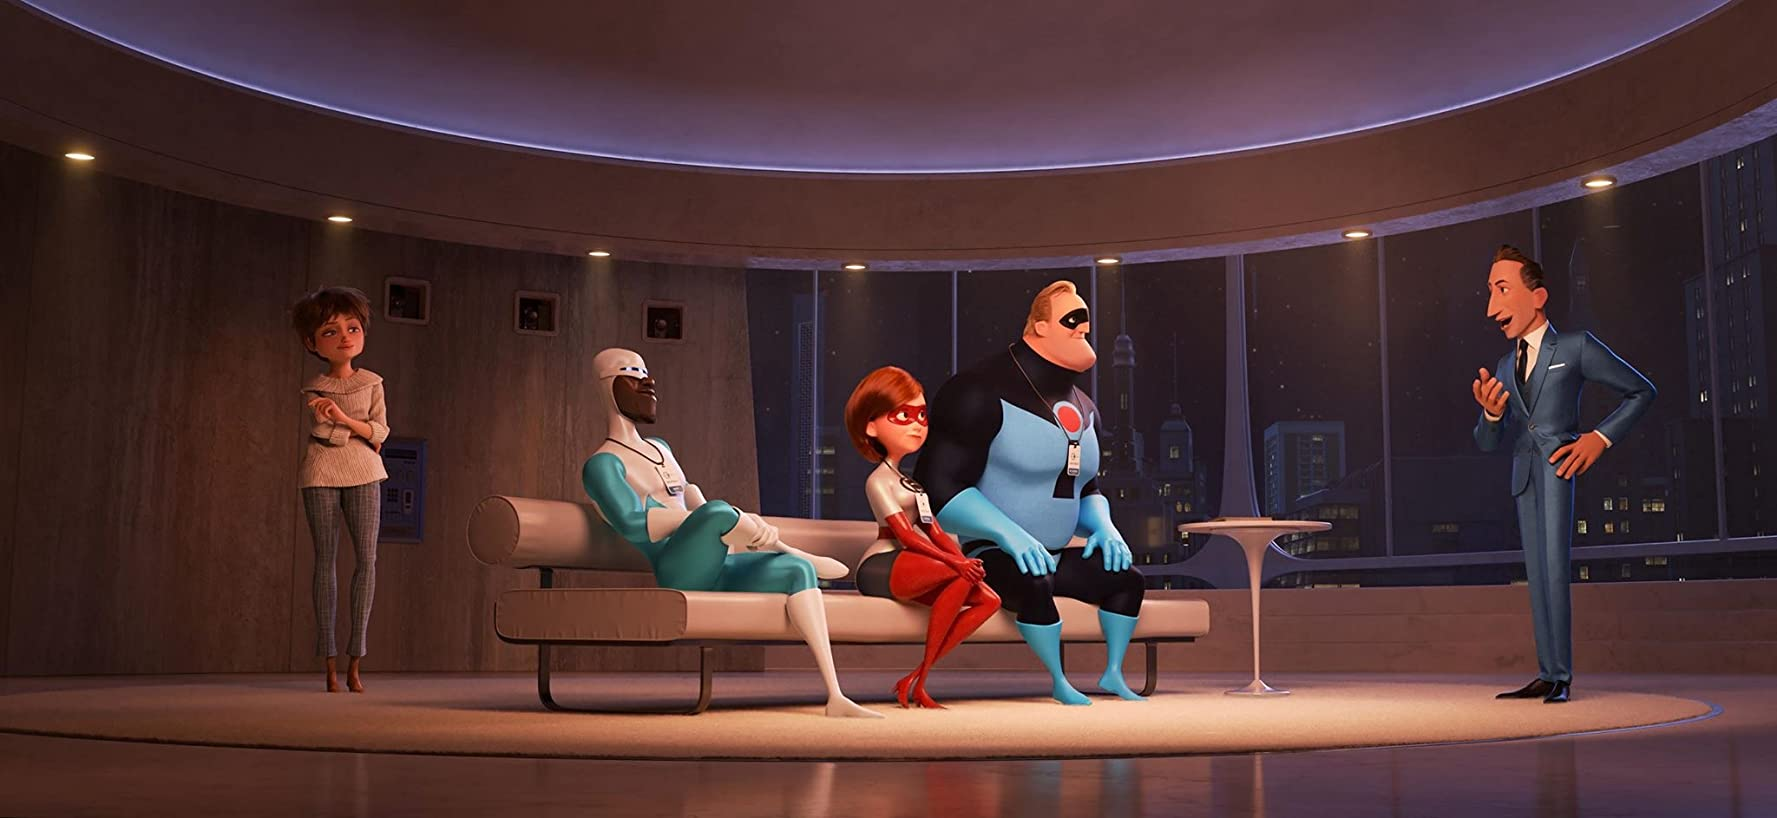 Samuel L. Jackson, Holly Hunter, Catherine Keener, Craig T. Nelson, and Bob Odenkirk in Incredibles 2 (2018)